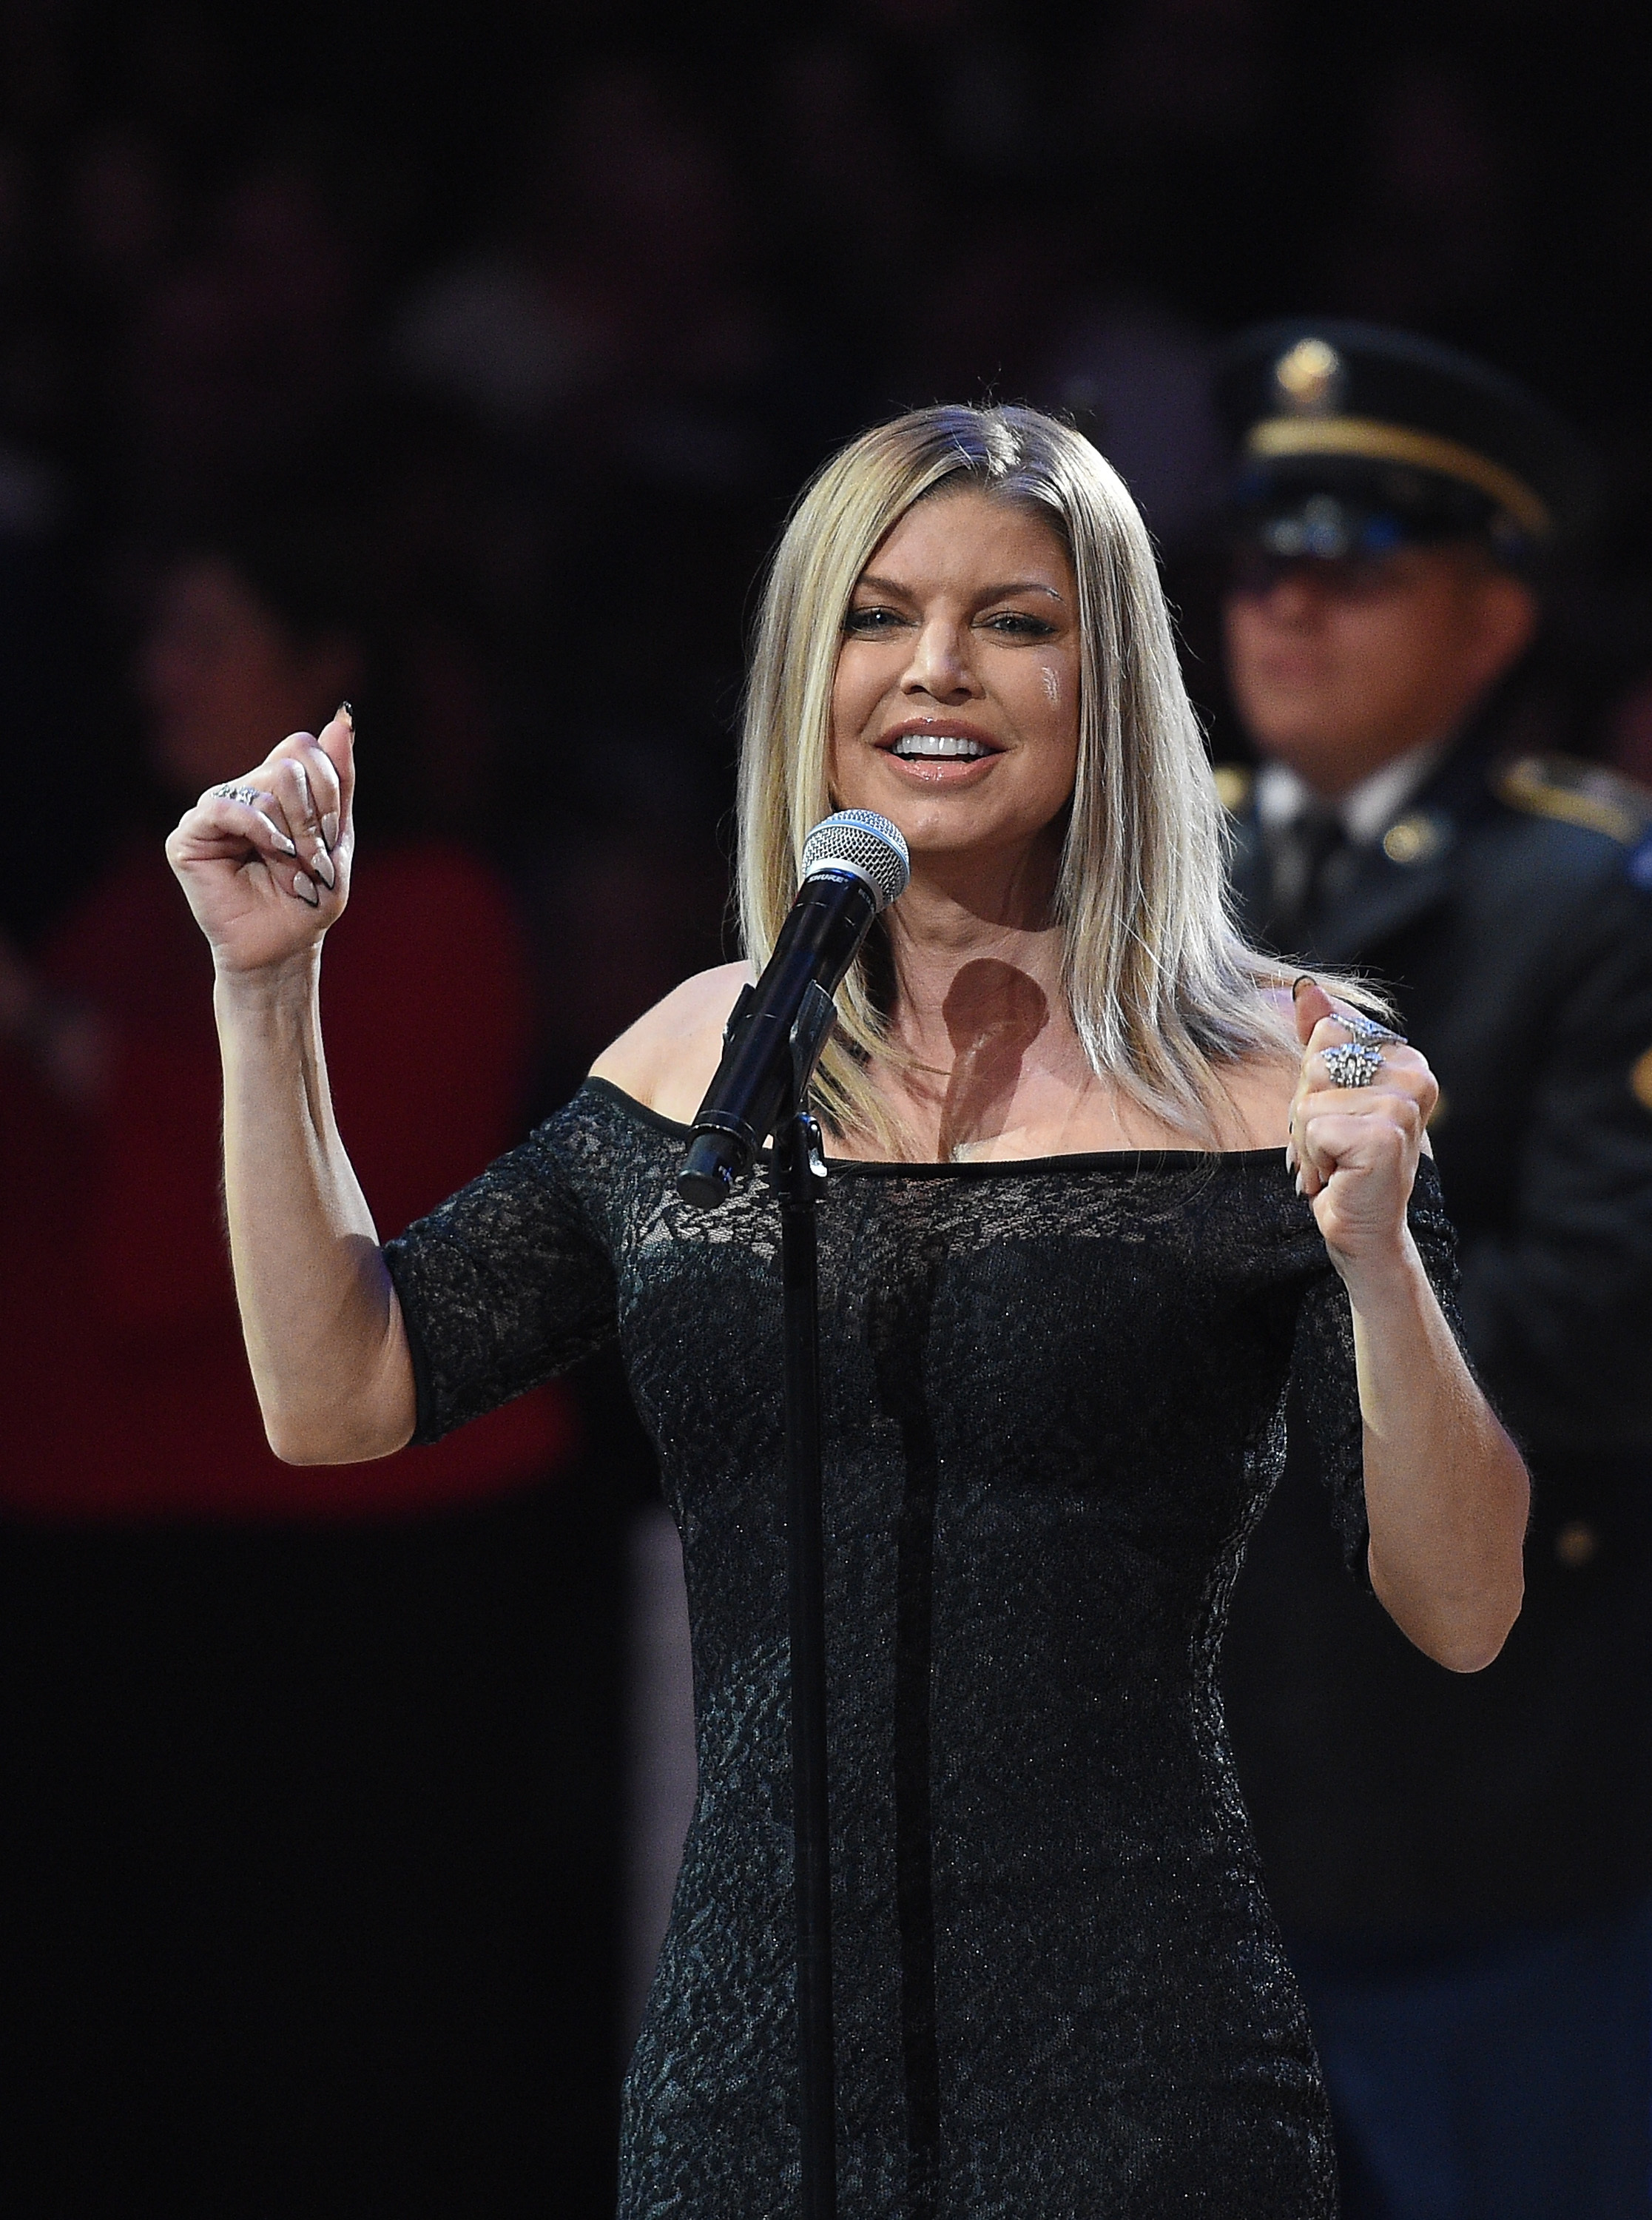 Fergie sings the National Anhtem prior to the NBA All Star Game 2018 at Staples Center in Los Angeles on Feb 18, 2018.